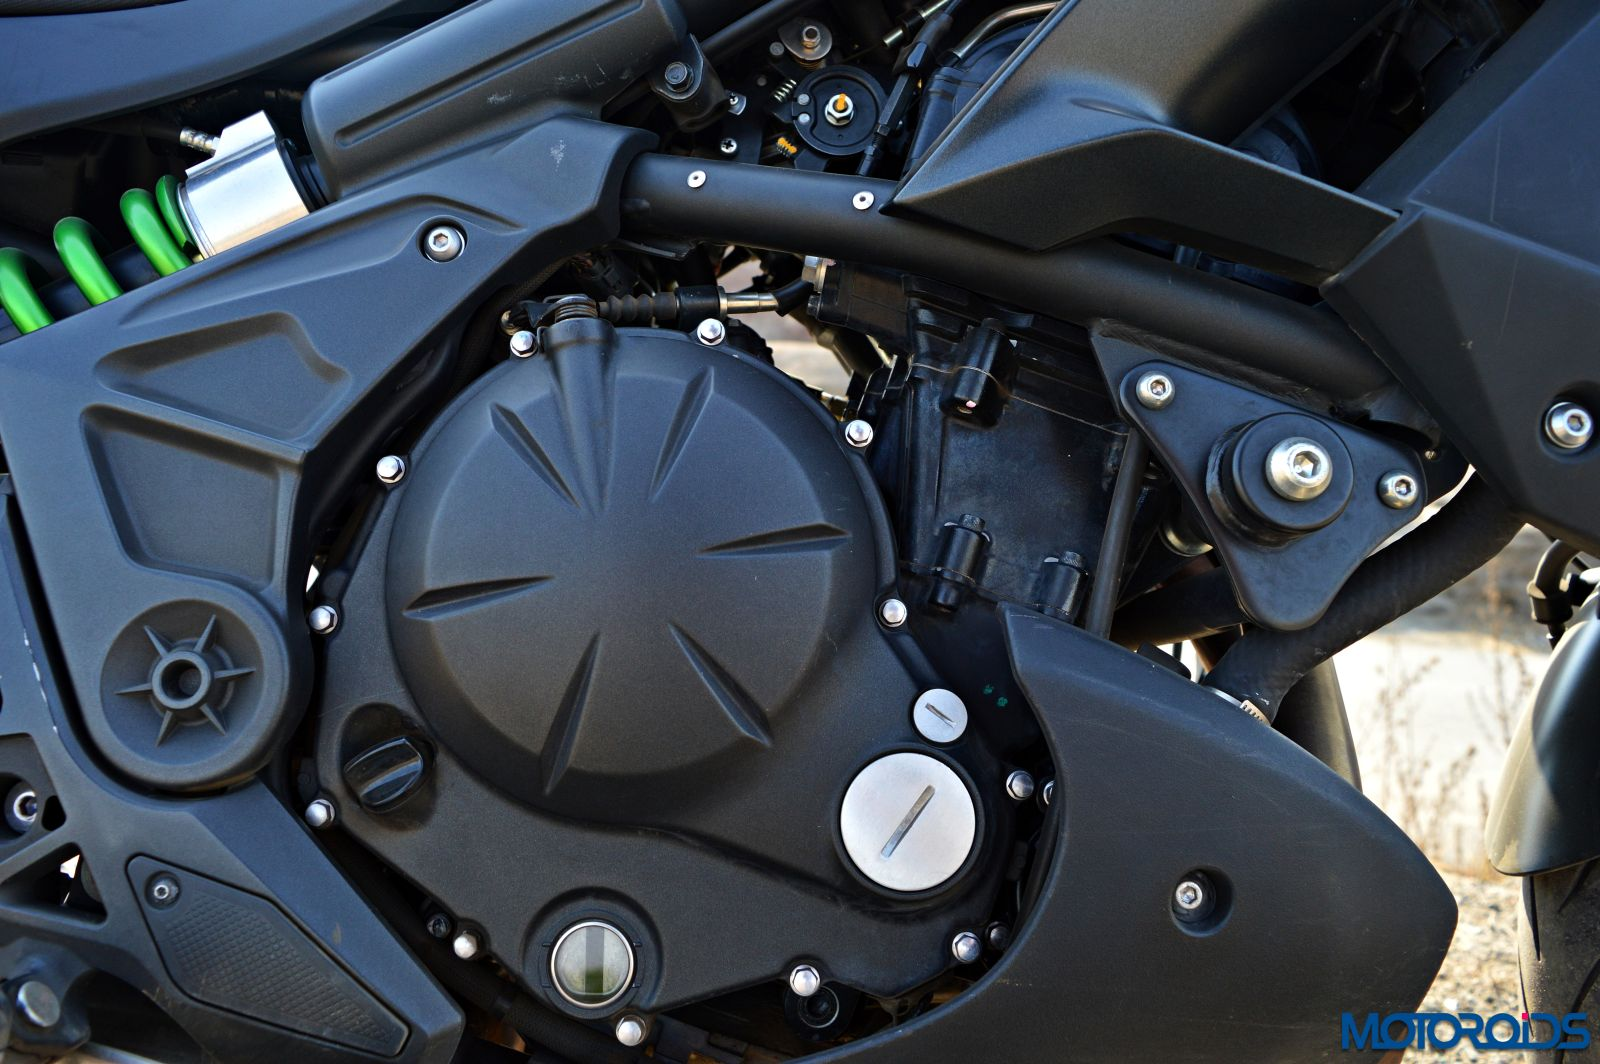 Kawasaki Versys 650 - Review - Details - Engine (2)